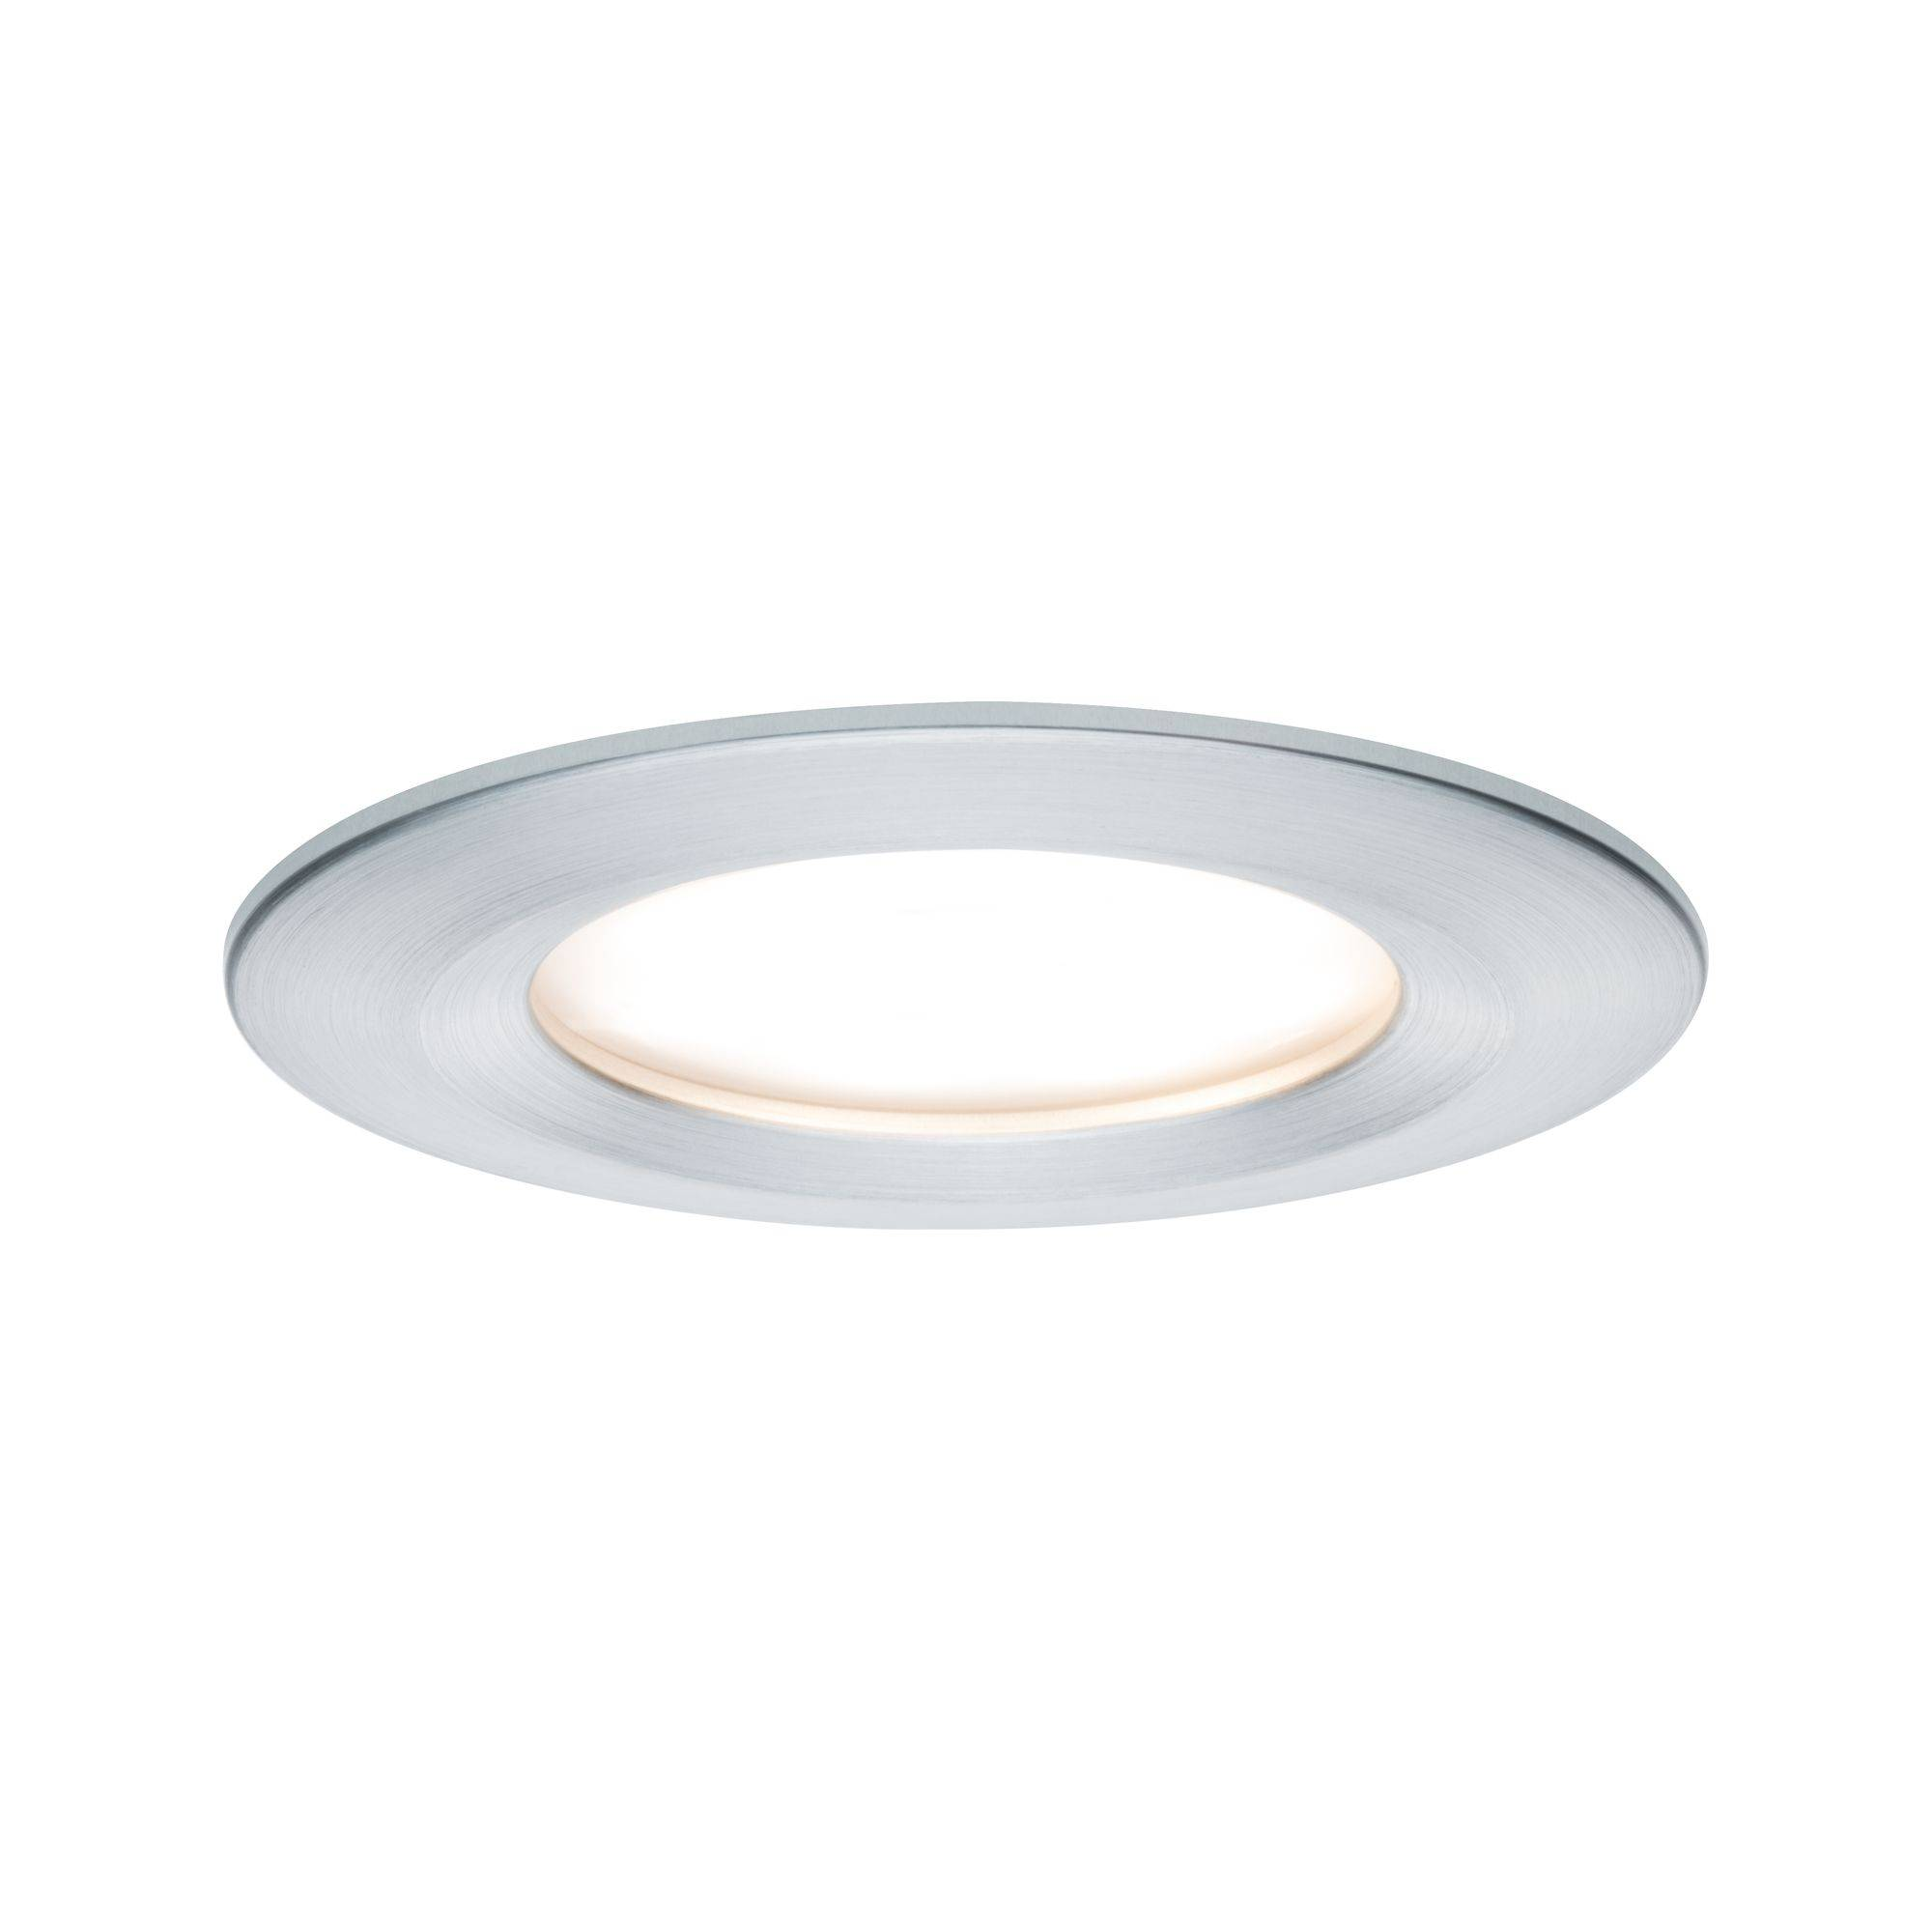 Paulmann Nova Bathroom Recessed Light